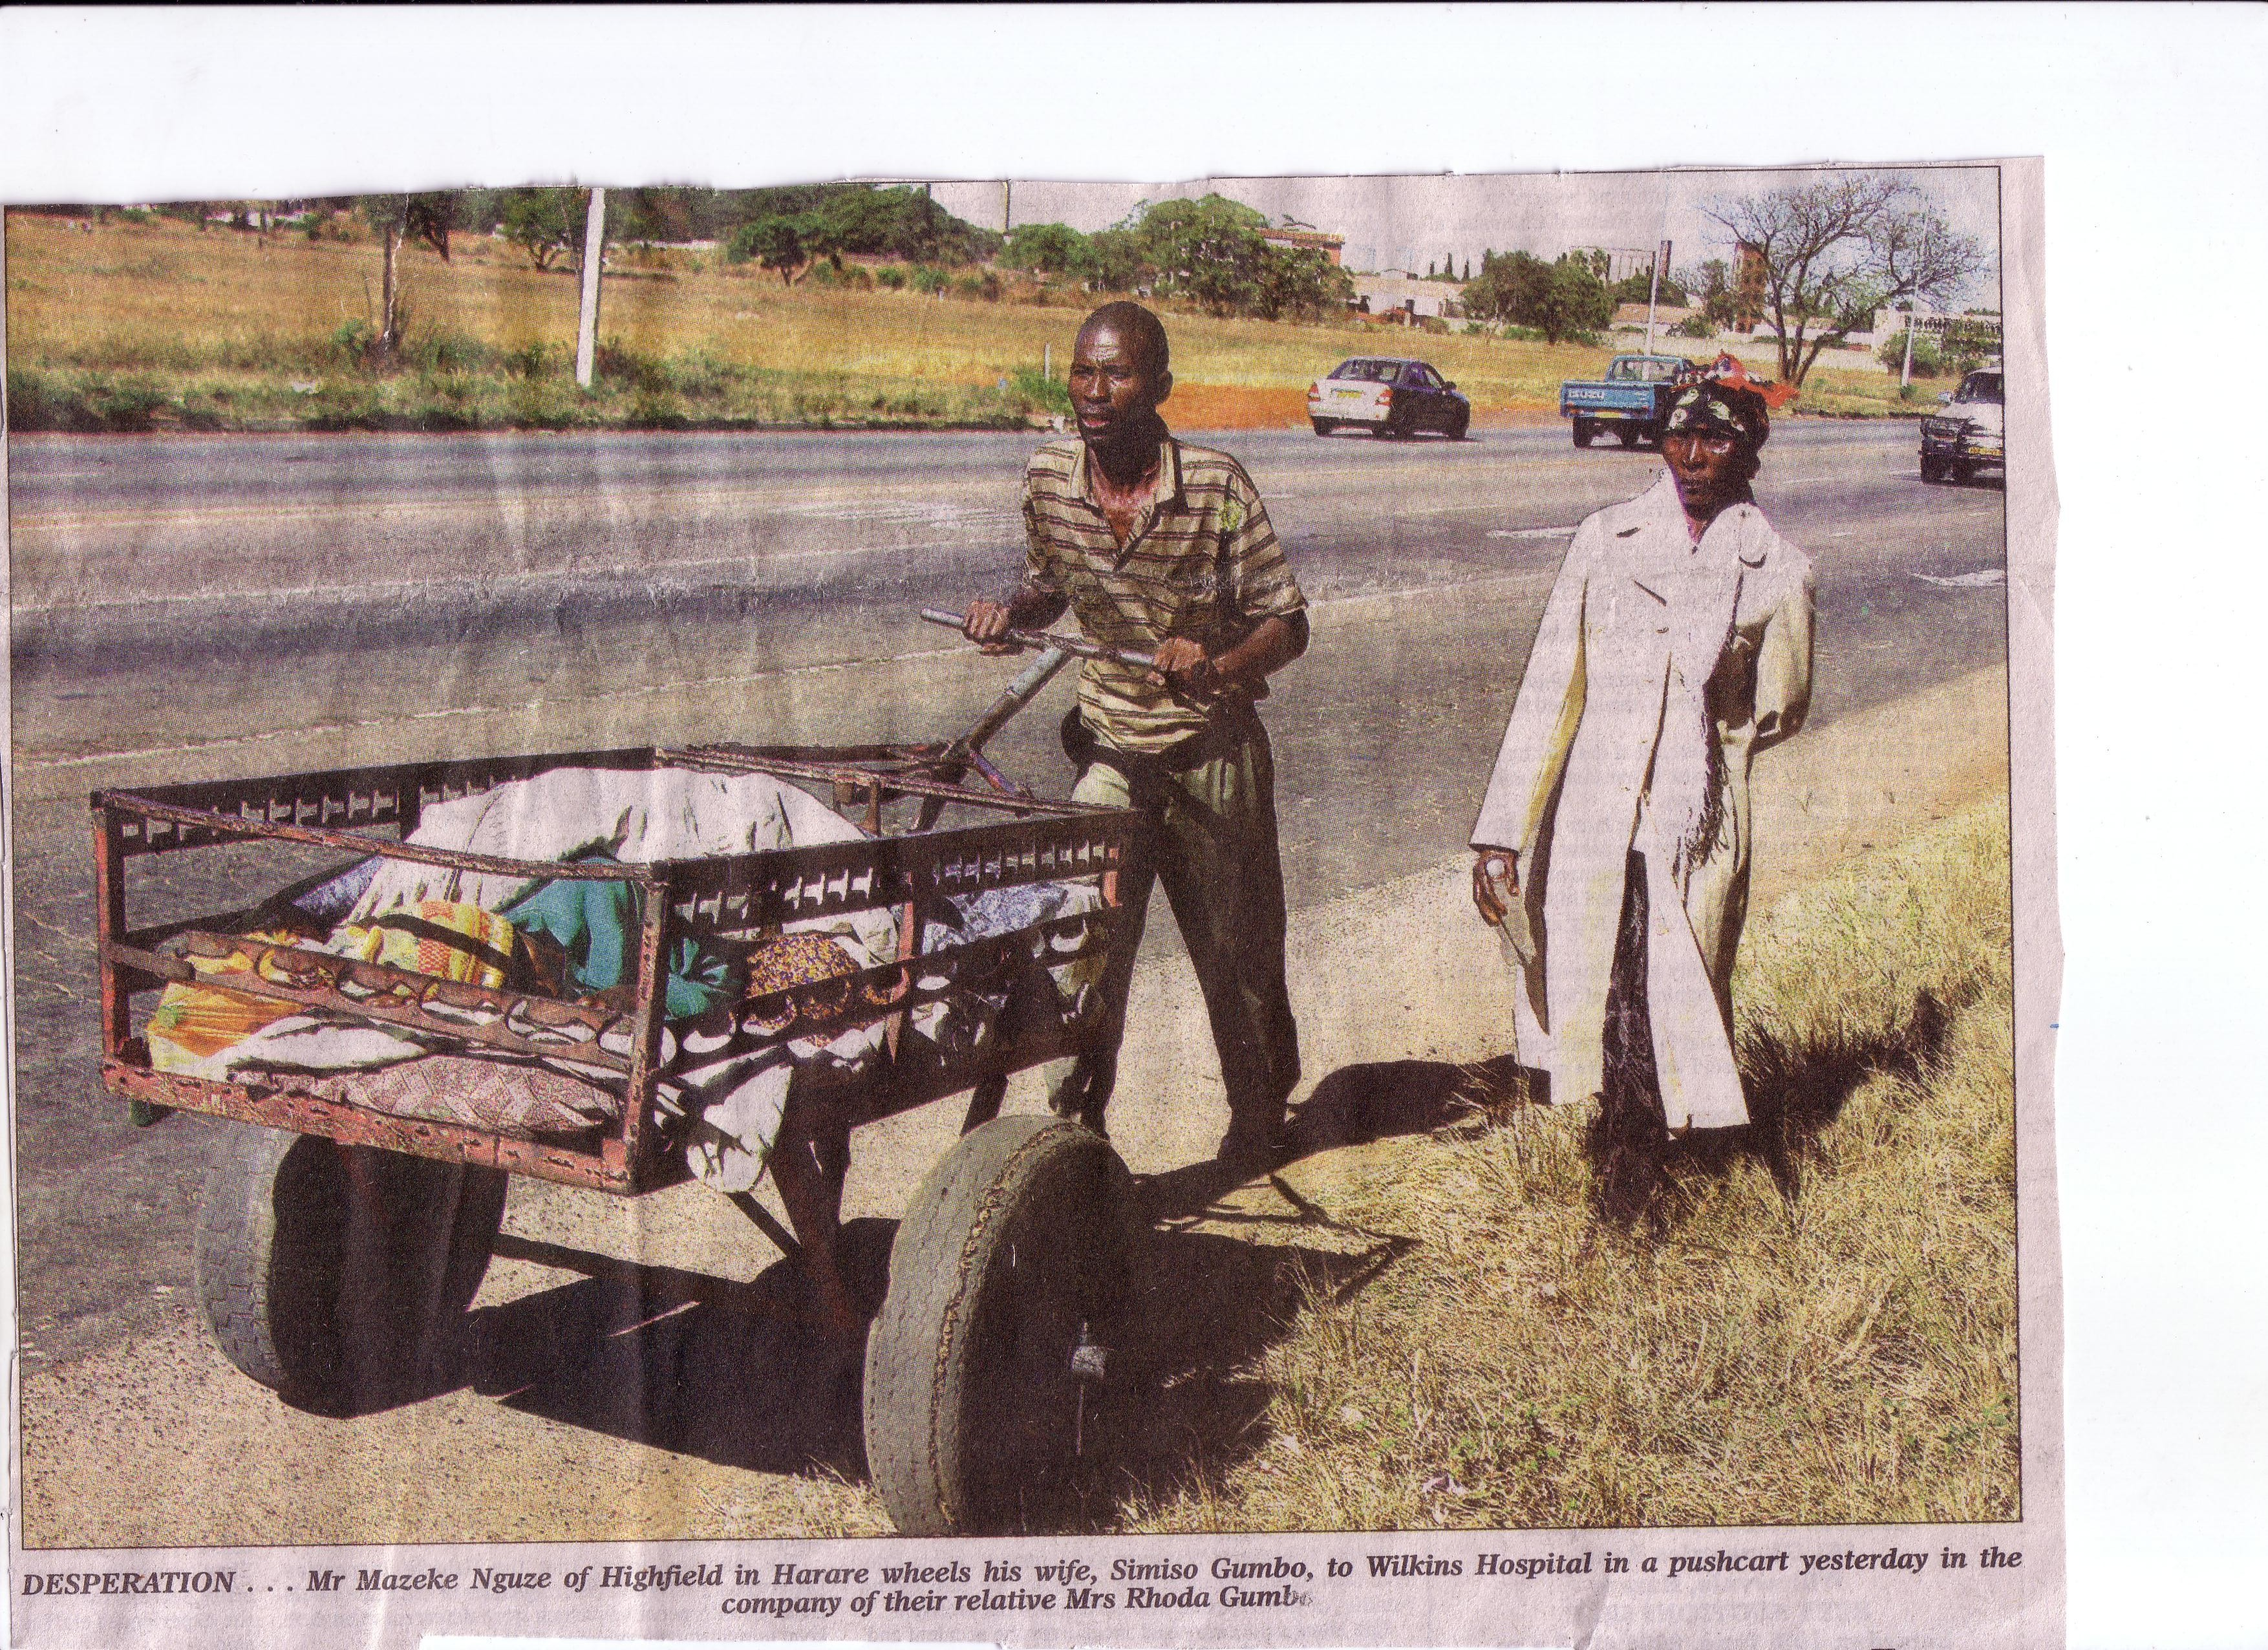 A 2006 newspaper clipping from the Harare Herald in Zimbabwe.